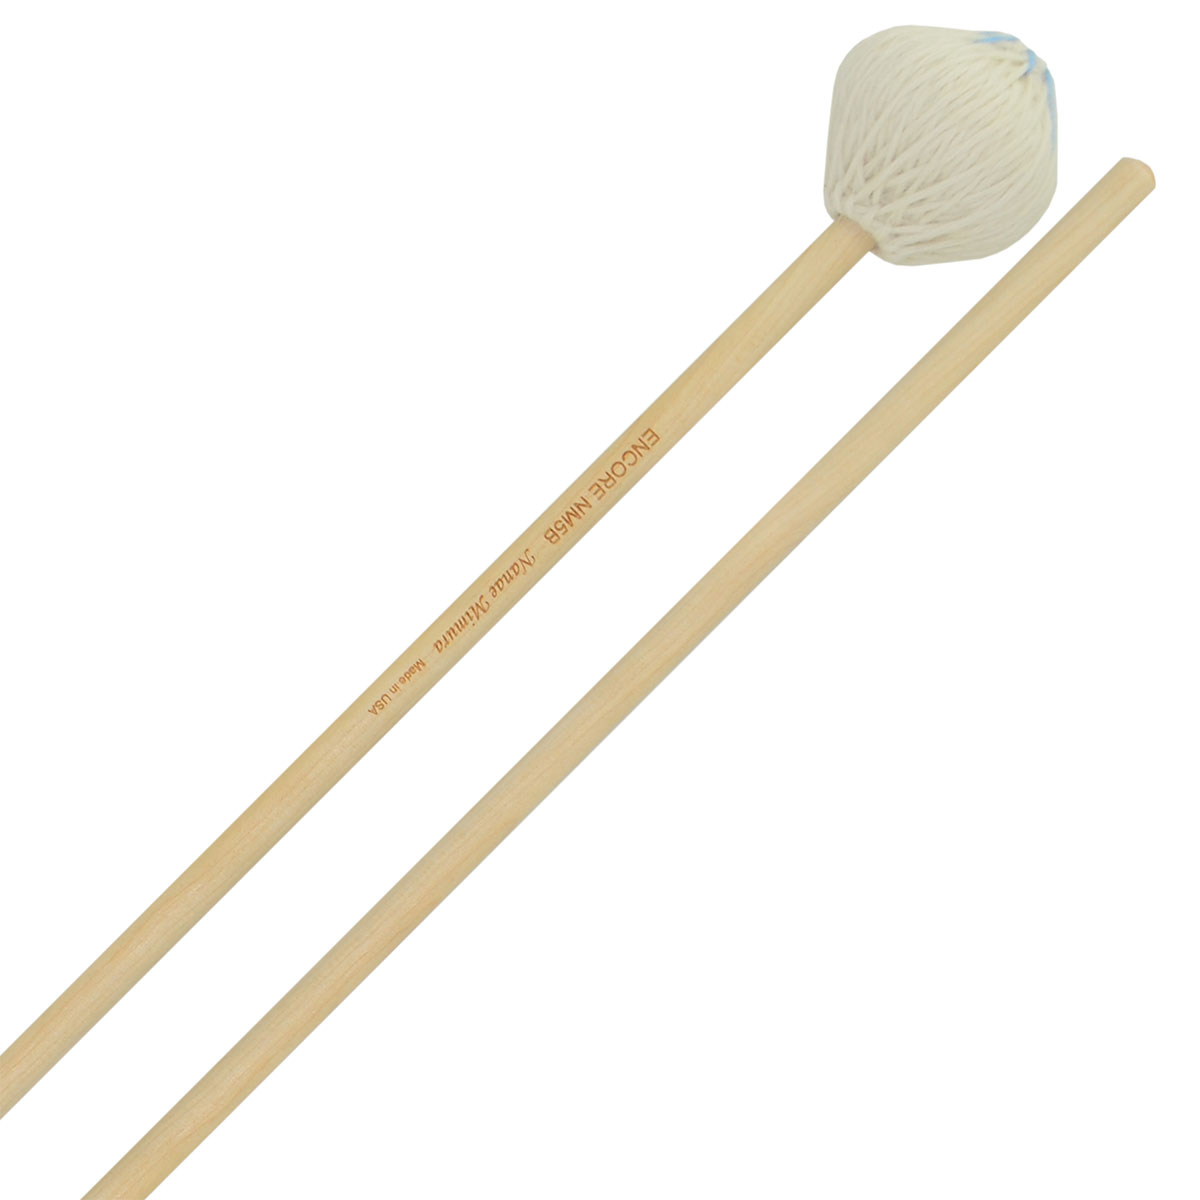 Encore Nanae Mimura Signature Medium Soft Marimba Mallet with Birch Shafts